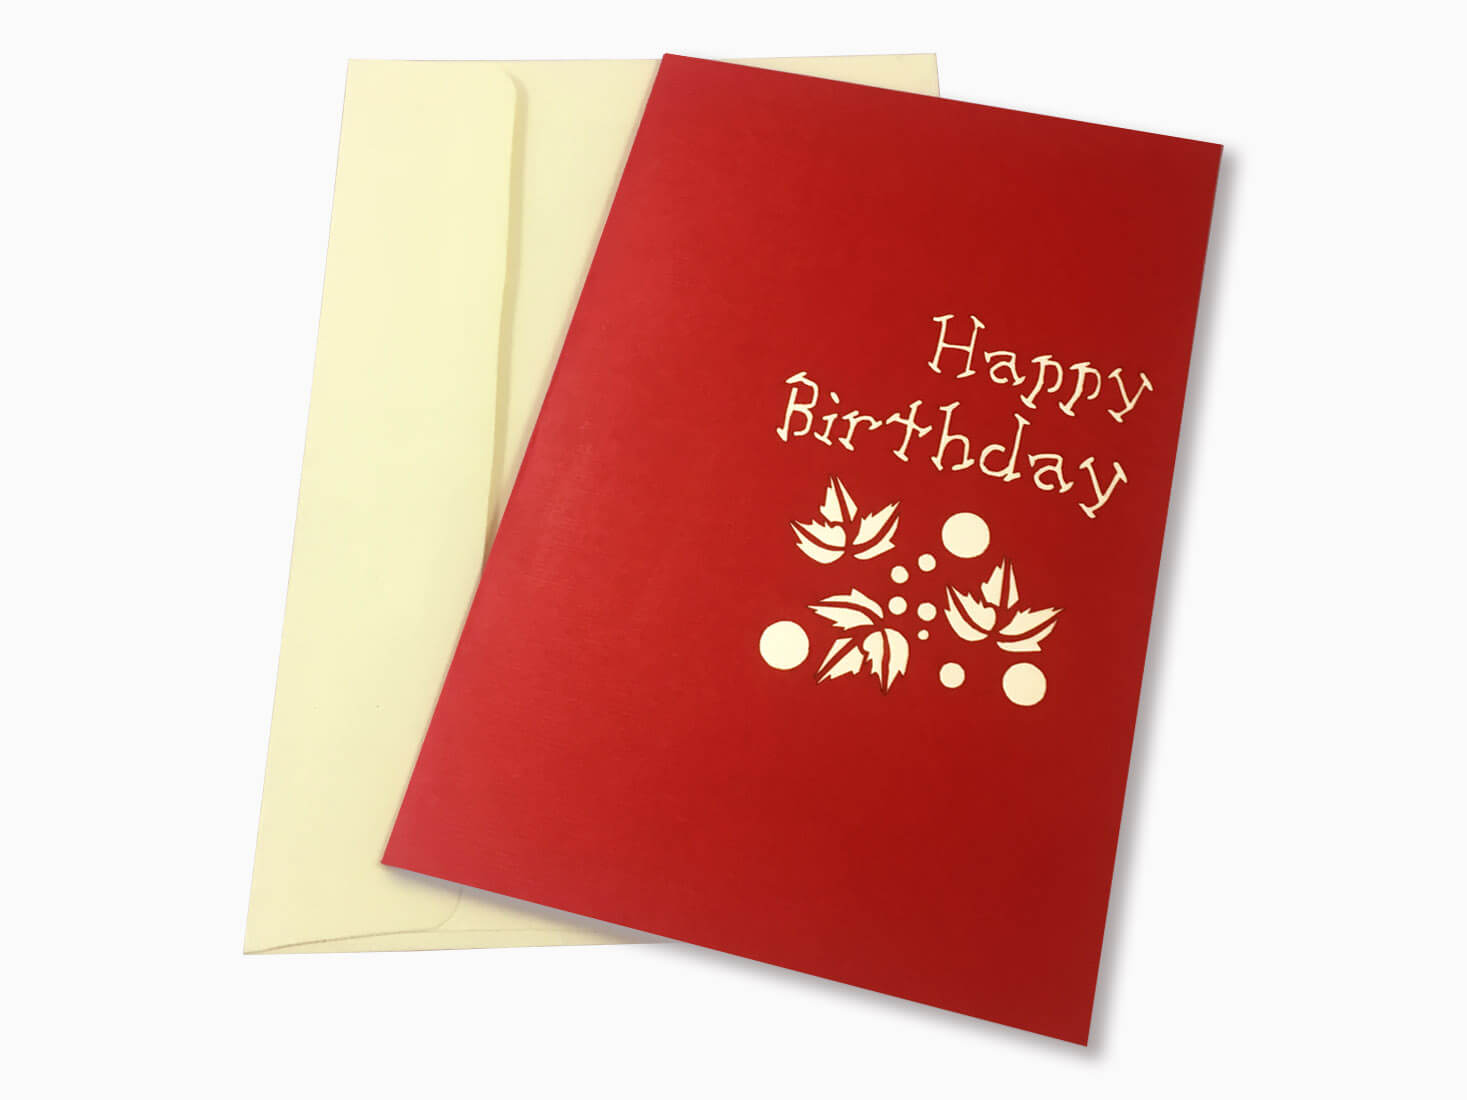 3d pop up greeting card birthday p105 wisholize 3d pop up greeting card birthday p105 bookmarktalkfo Image collections